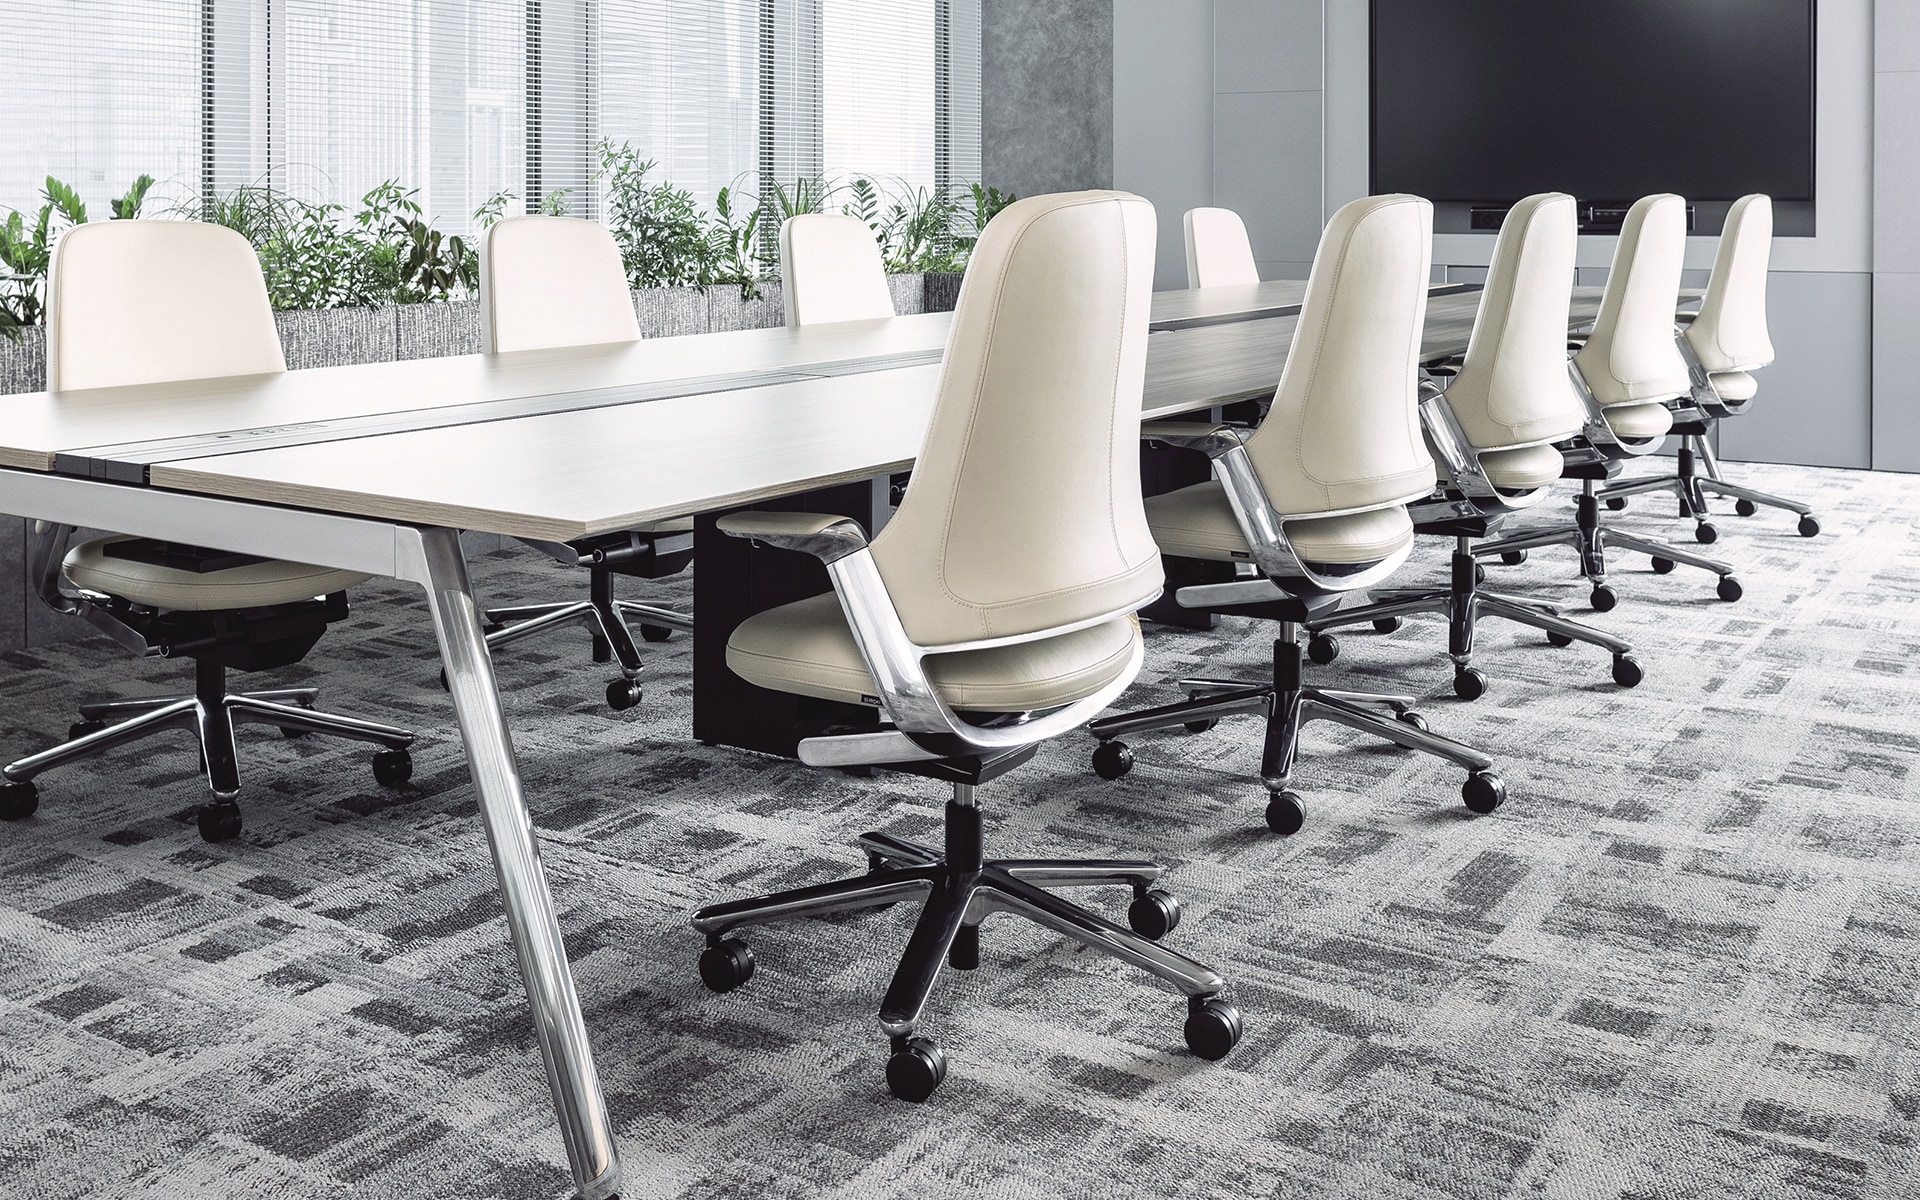 Nine white ITOKI Leonis executive chairs by ITO Design in modern conference room